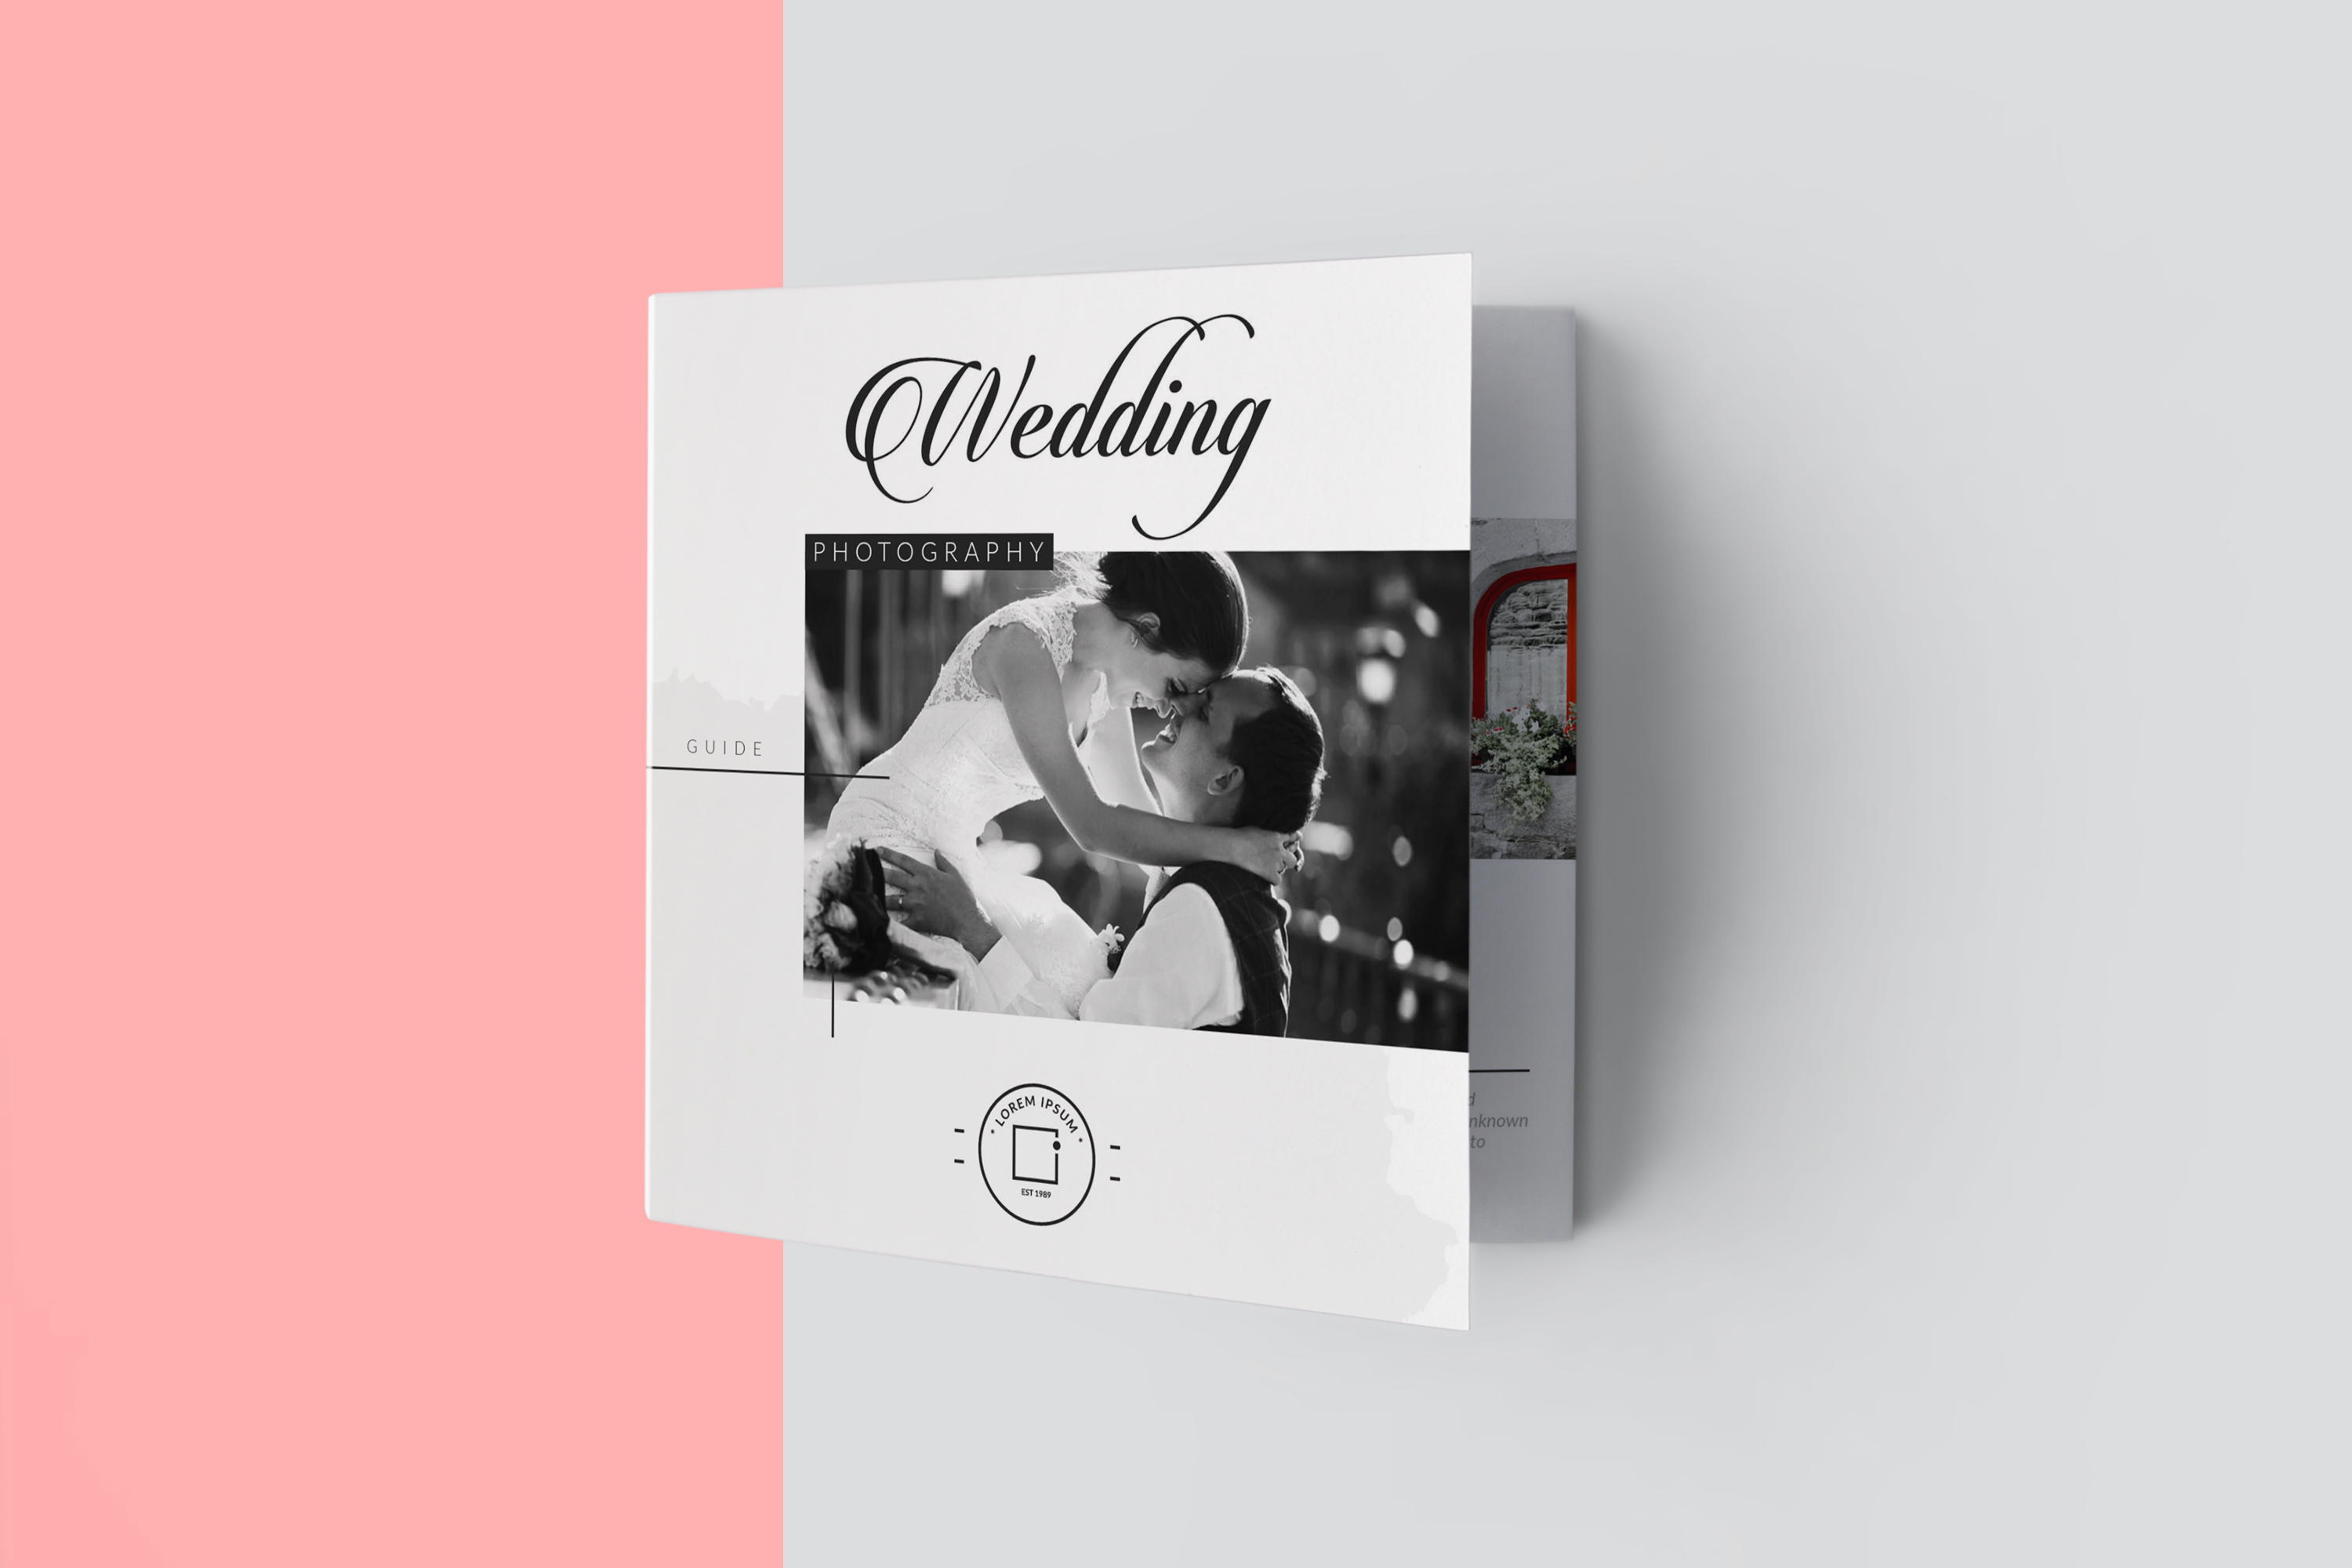 Wedding Photography Pricing Guides Tri-Fold Brochure Layout example image 7